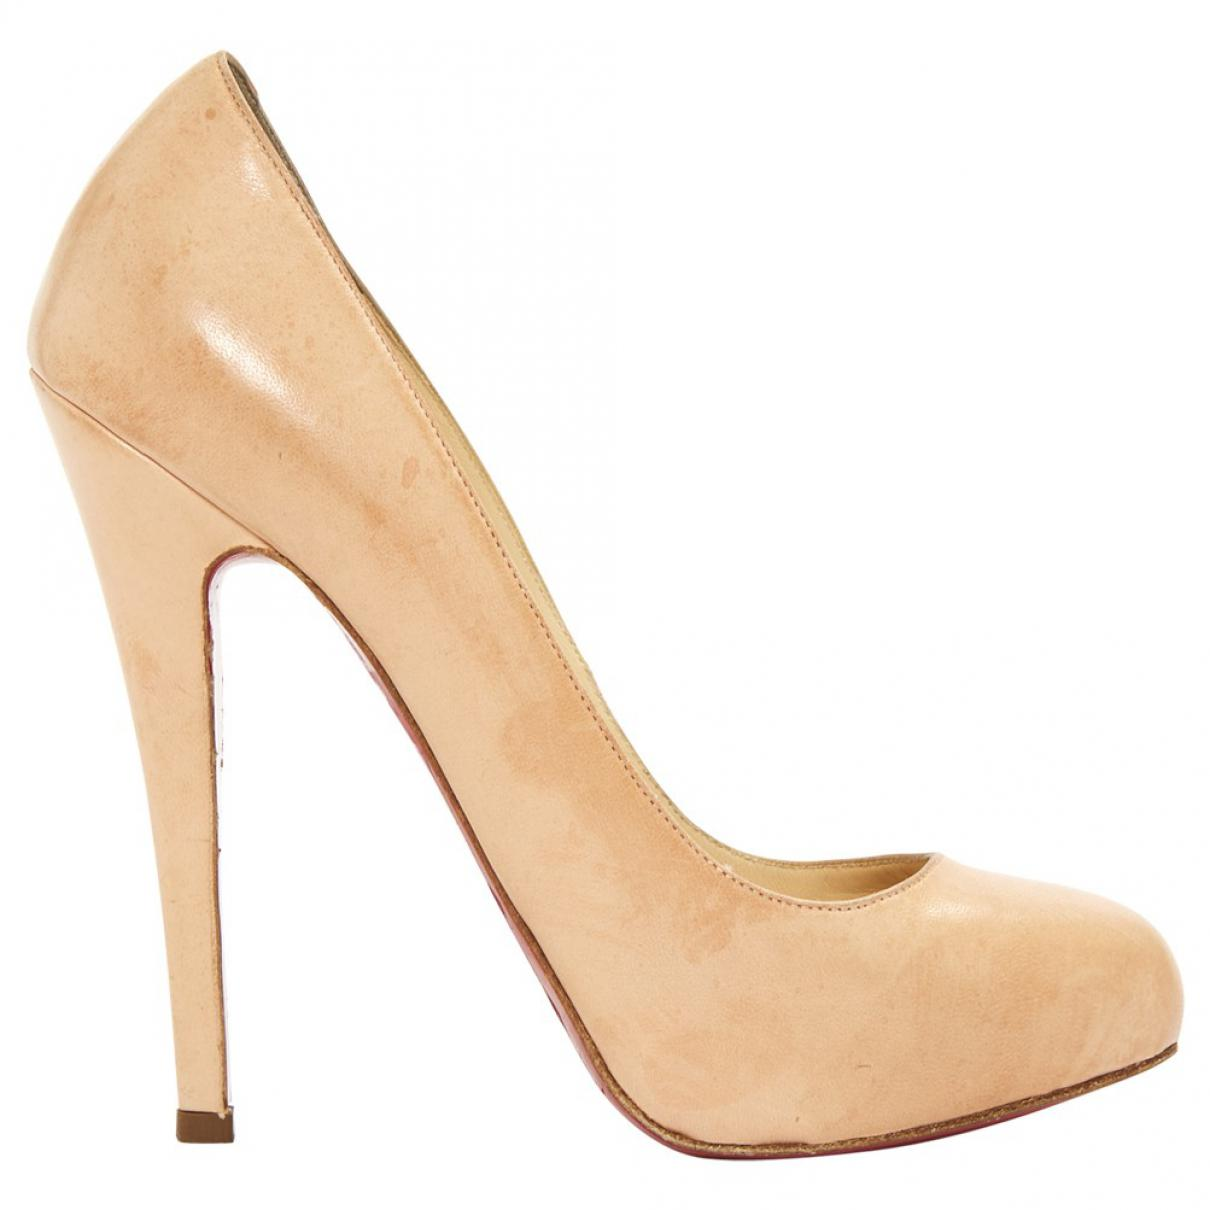 960d2bdb587f Lyst - Christian Louboutin Leather Heels in Natural